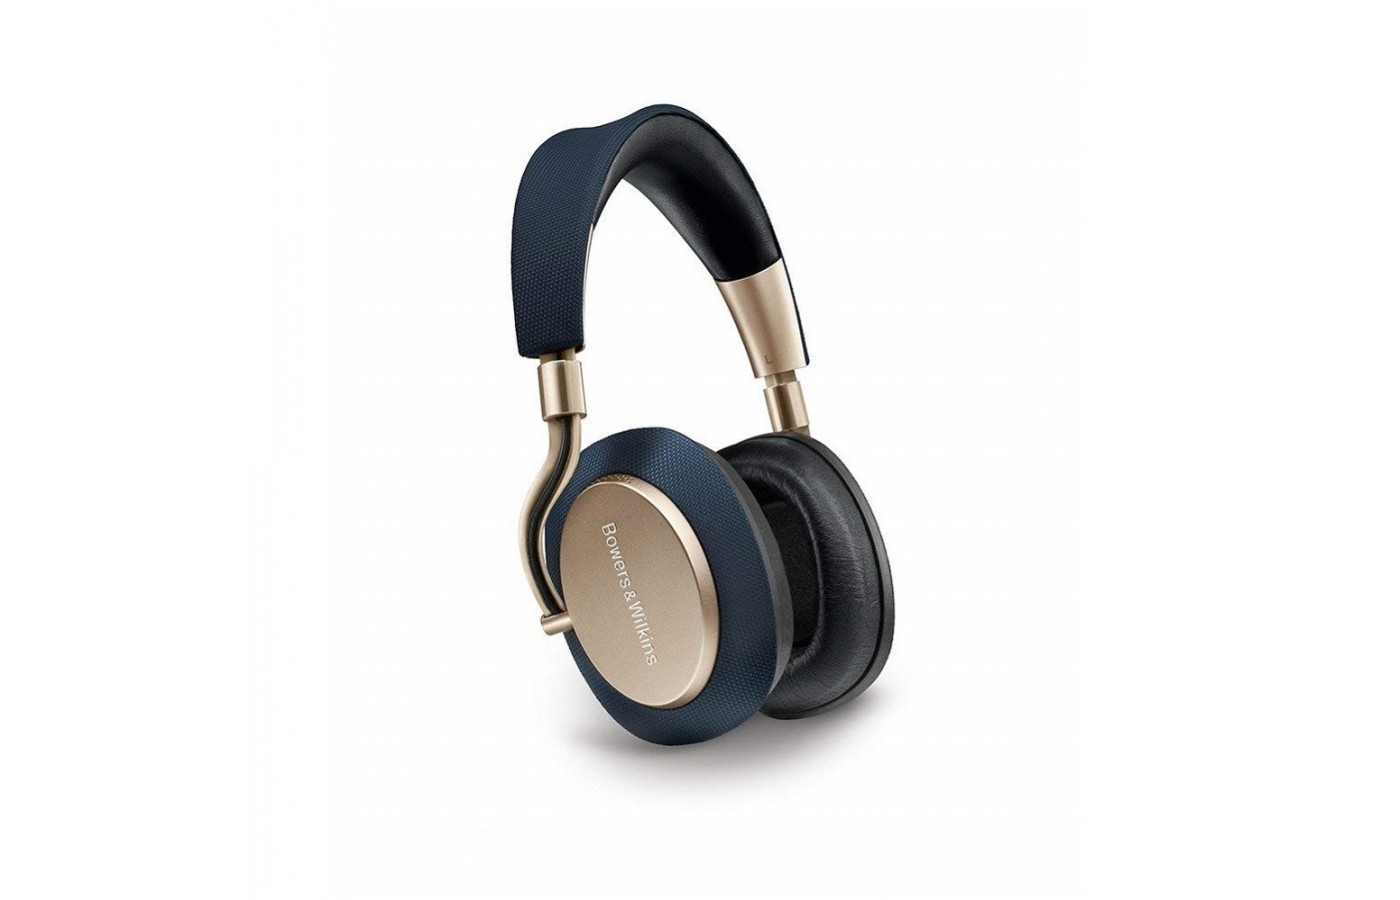 The Bowers & Wilkins PX offers ultra soft leather for superior comfort and durability.